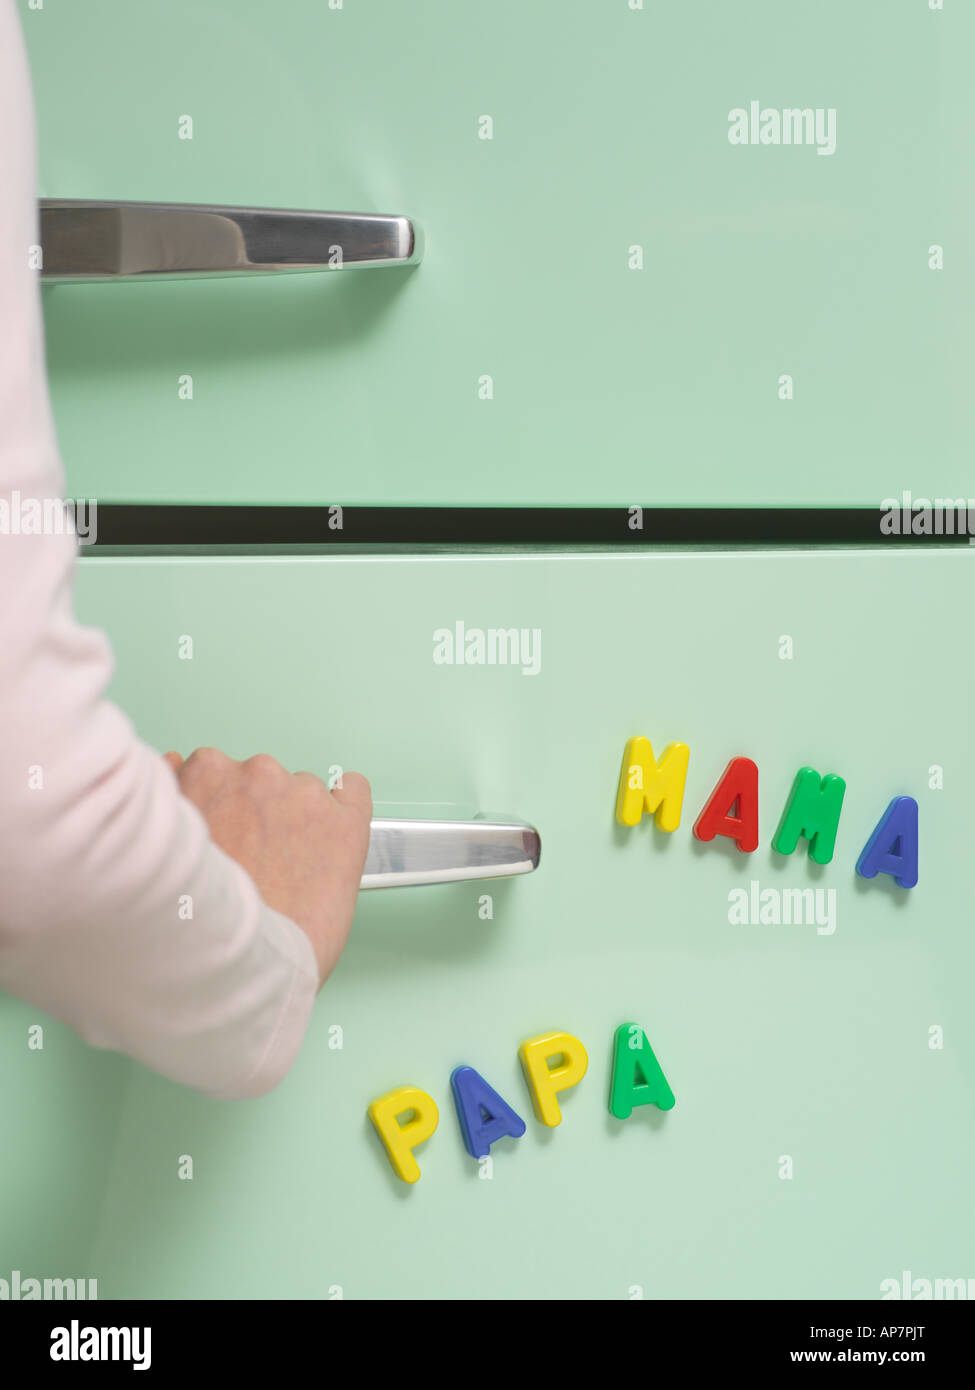 Words written with magnets on refrigerator Stock Photo